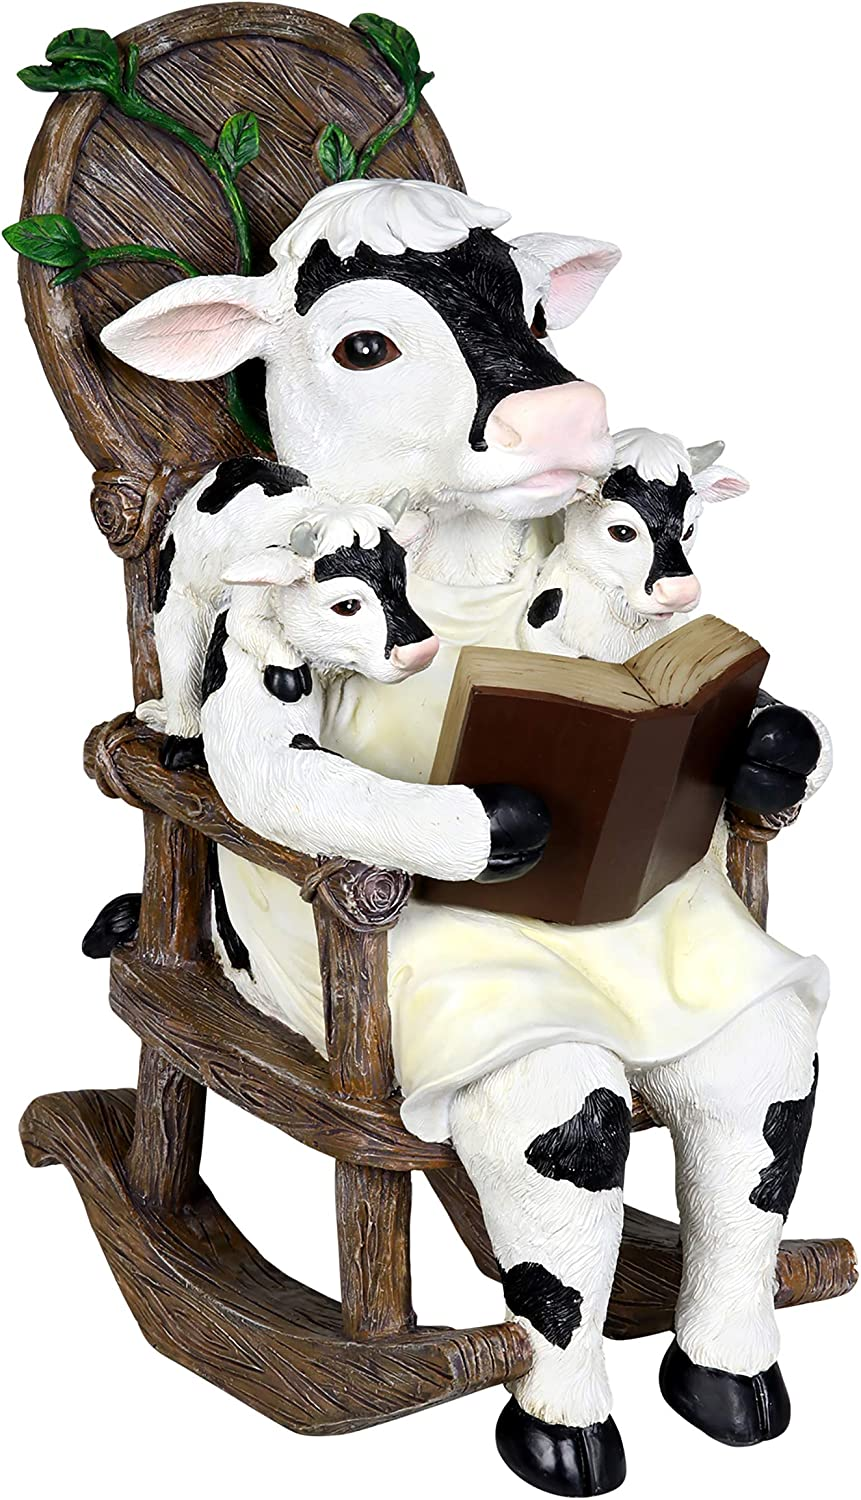 """Exhart Solar Cow Family Reading a Book on a Rocking Chair Garden Statue – Bookworm Cows Mini Figurine w/Solar LED Lights, Booklovers Cow Statue, Resin Cow Decorations, 5.9"""" L x 7.9"""" W x 12"""" H"""